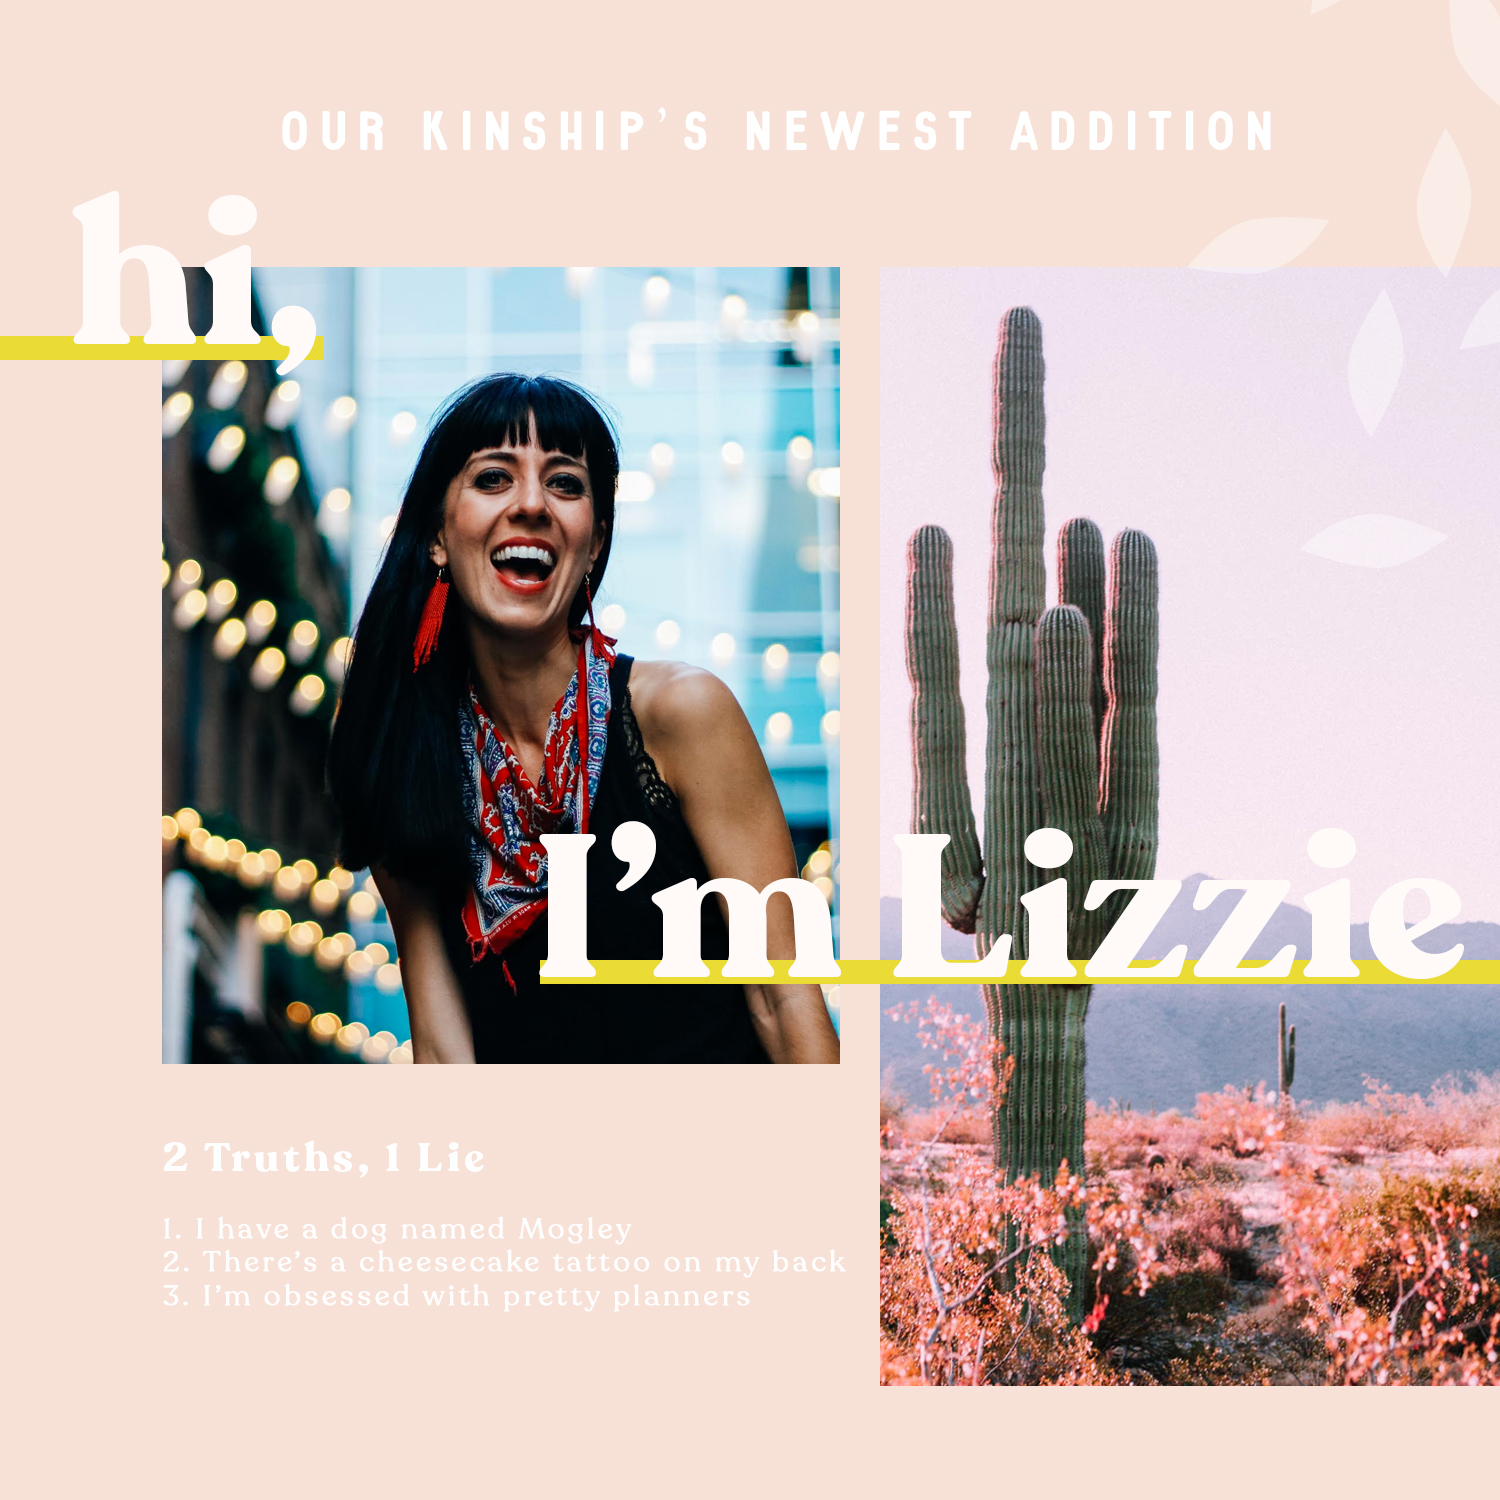 Instagram Post // 2 Truths & 1 Lie for New Hires